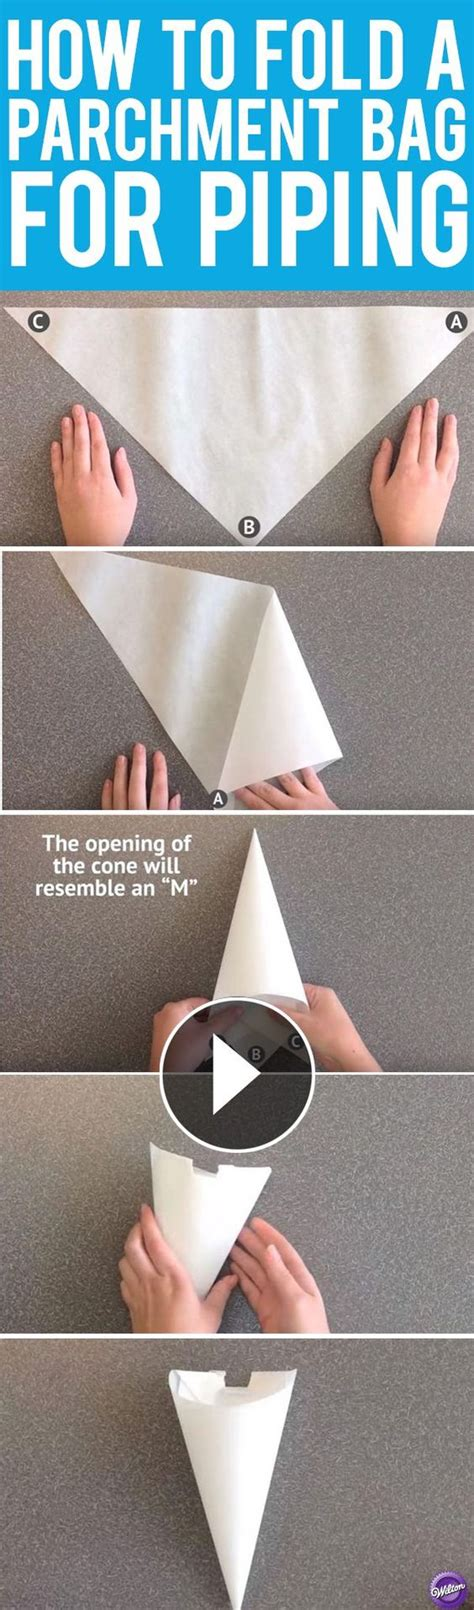 How To Make A Pastry Bag Out Of Wax Paper - learn how to make a piping bag out of parchment paper